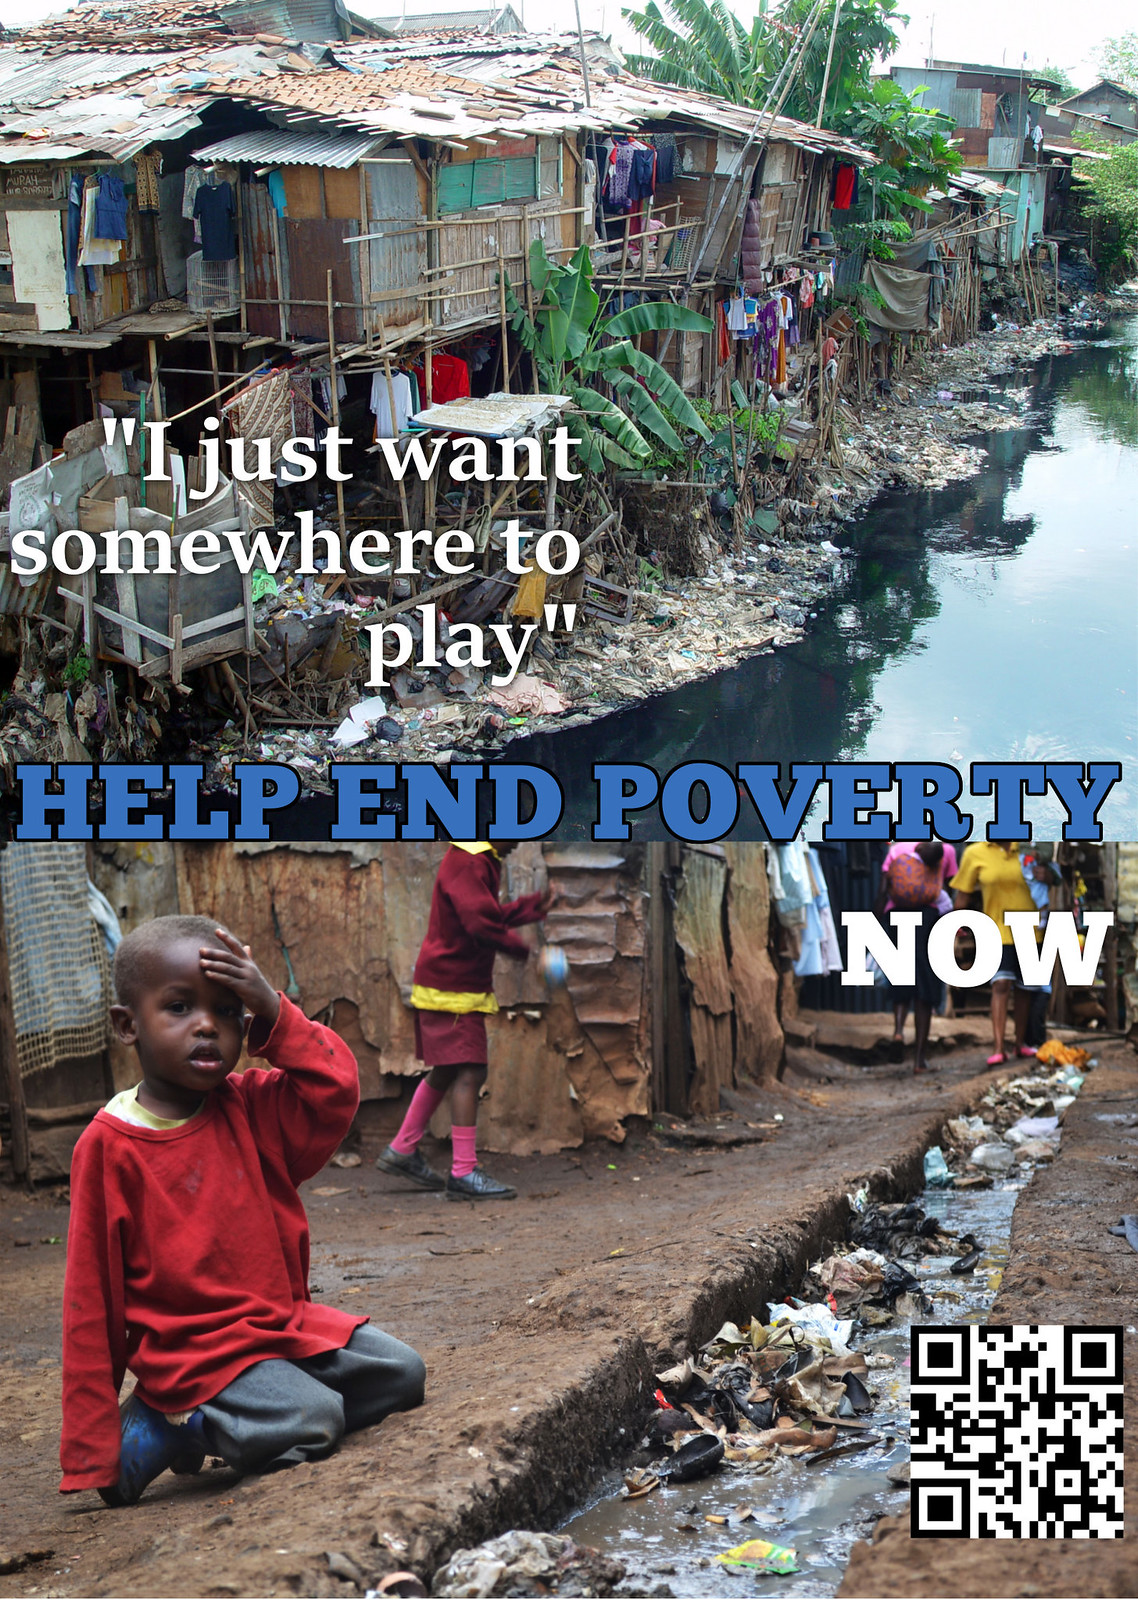 Create a rhetorical poster exercise: Help End Poverty. Now